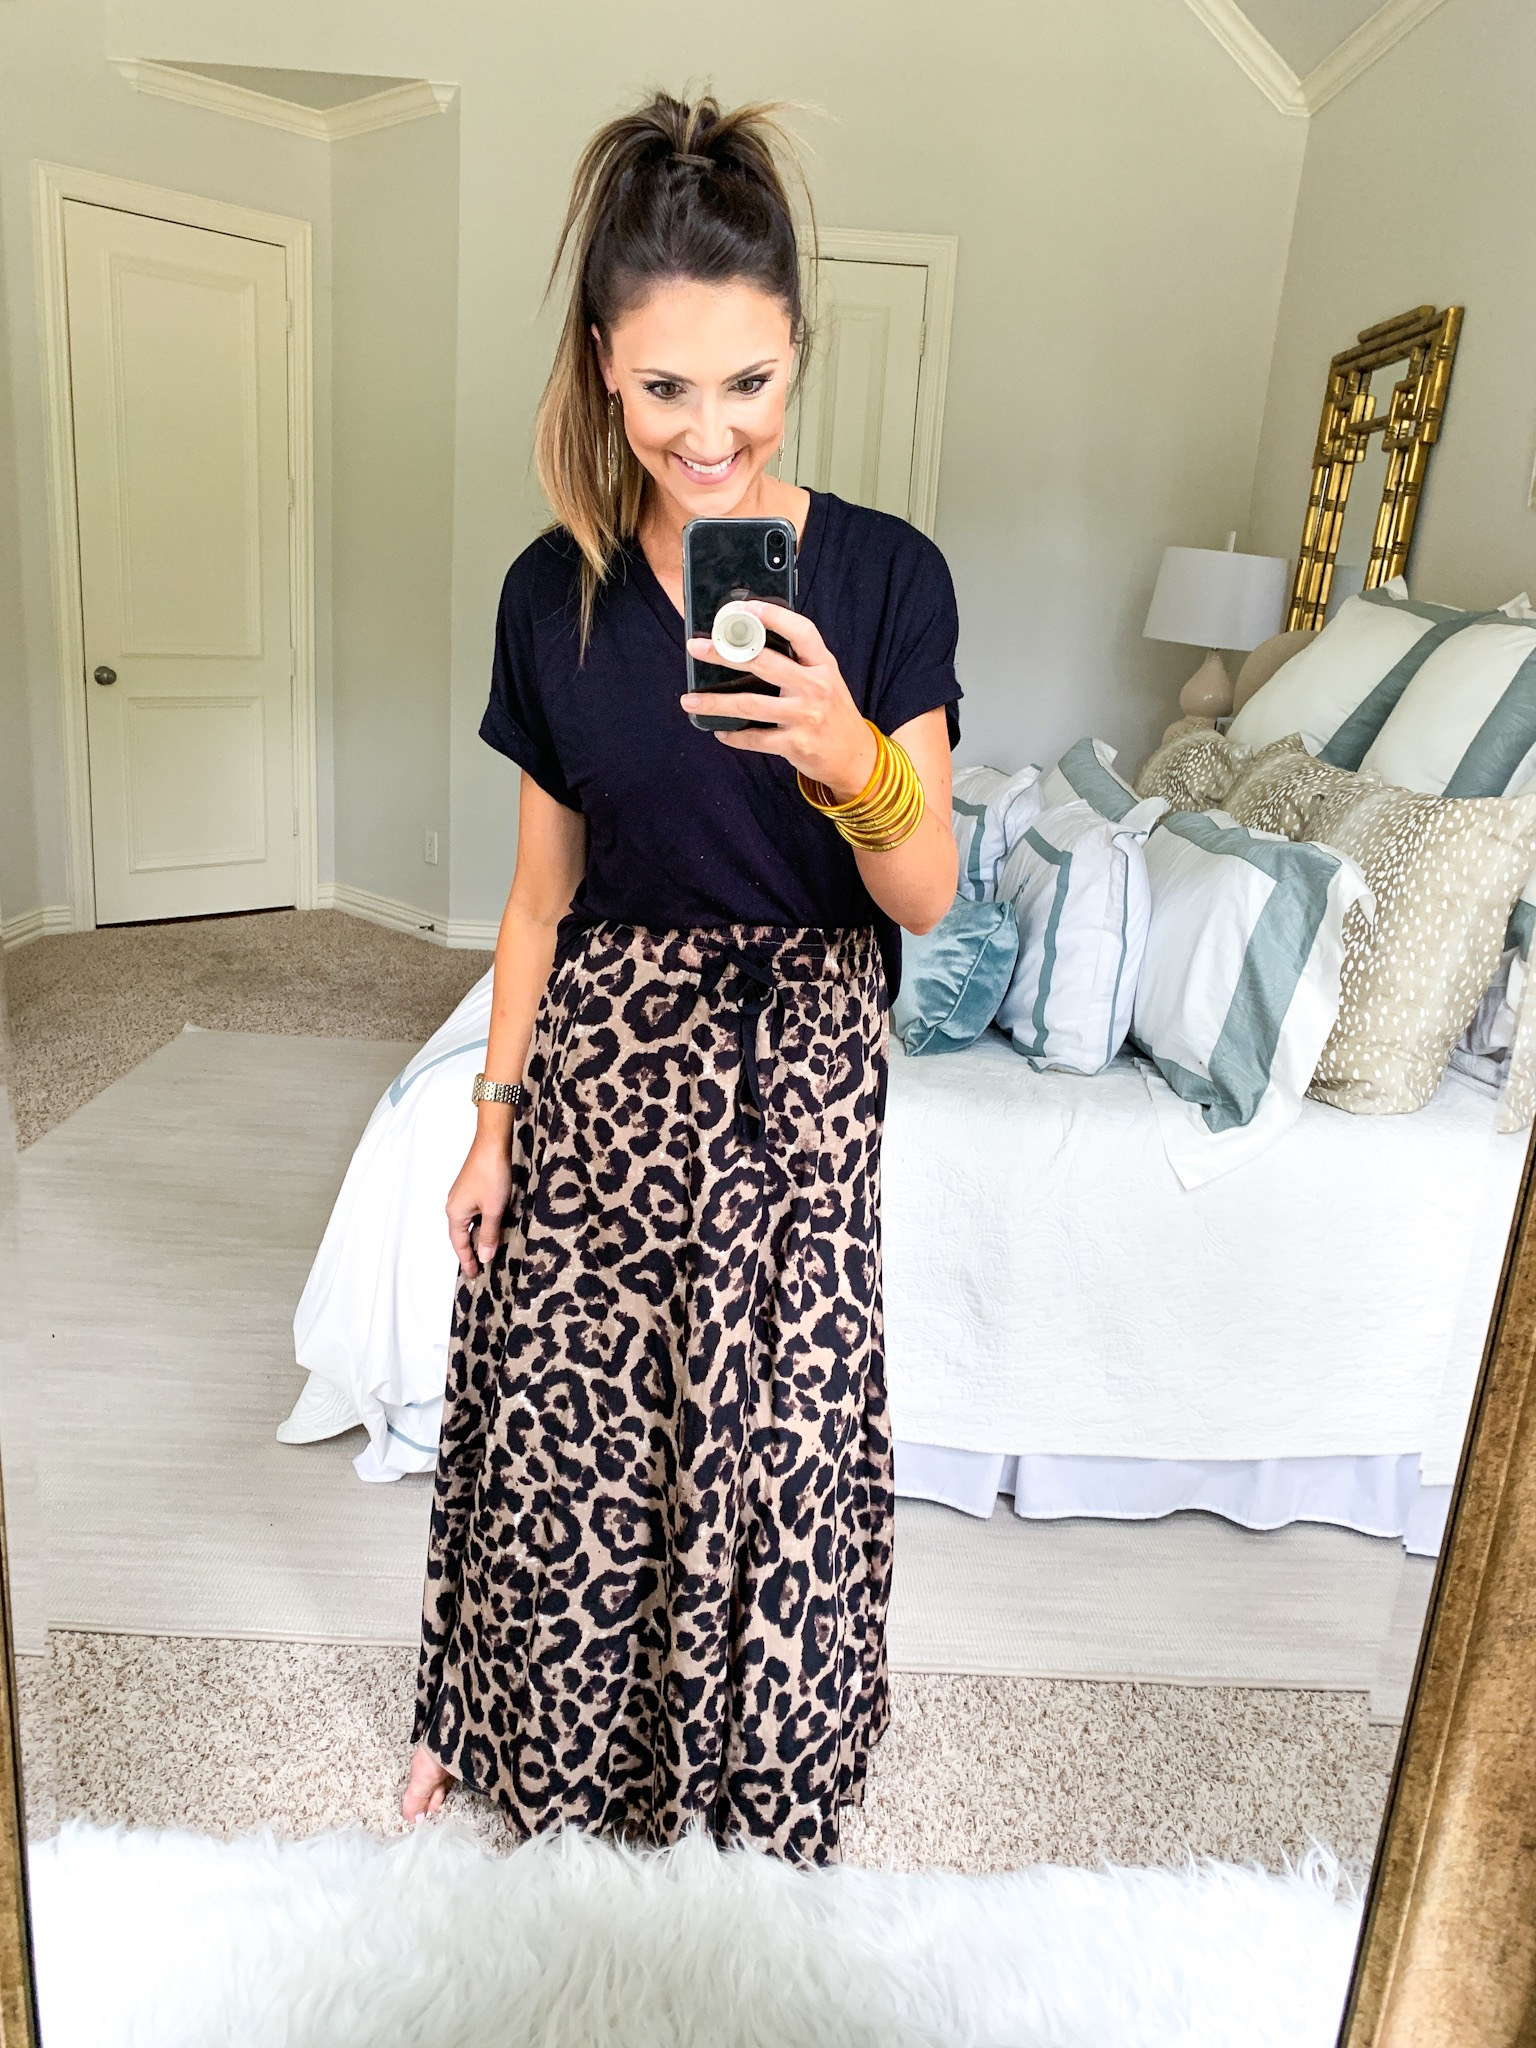 Leopard Midi Skirt | Amazon Fashion Haul | Style Your Senses